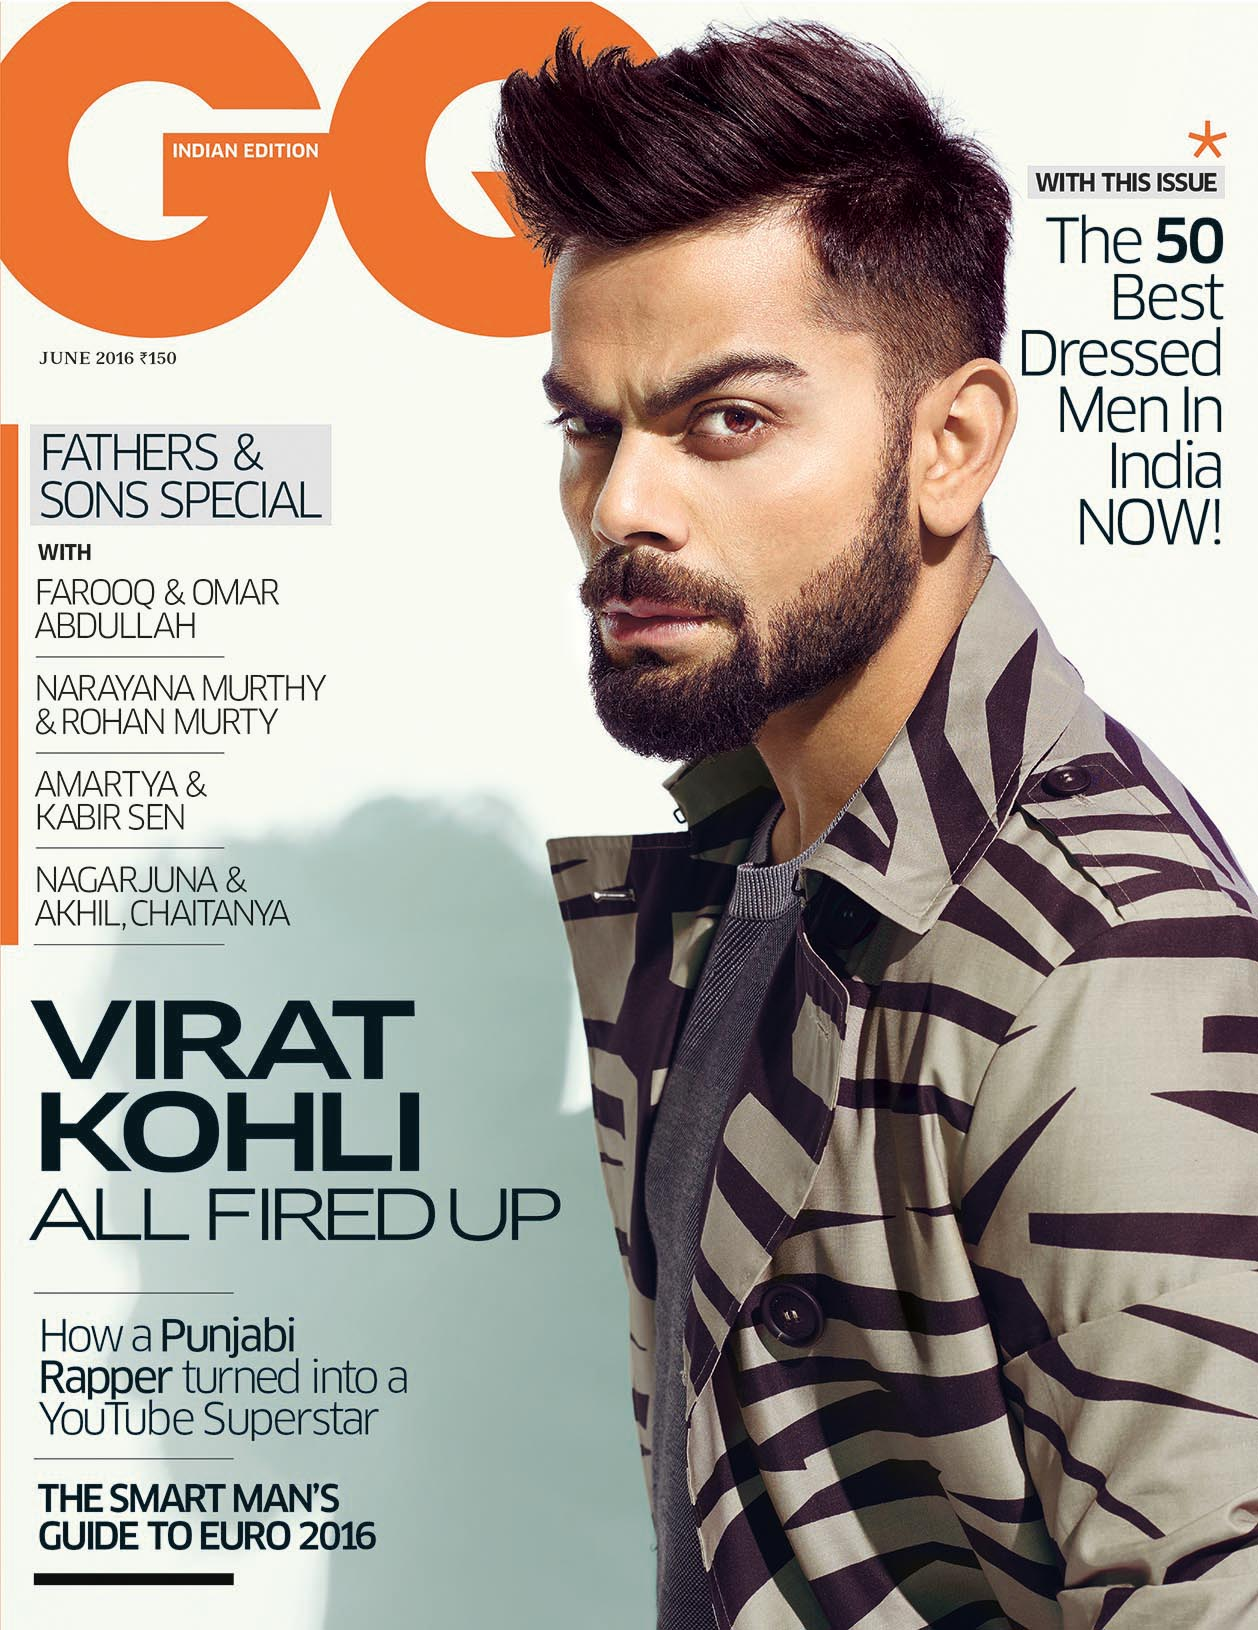 Virat Kohli on the cover page of GQ India magazine June 2016